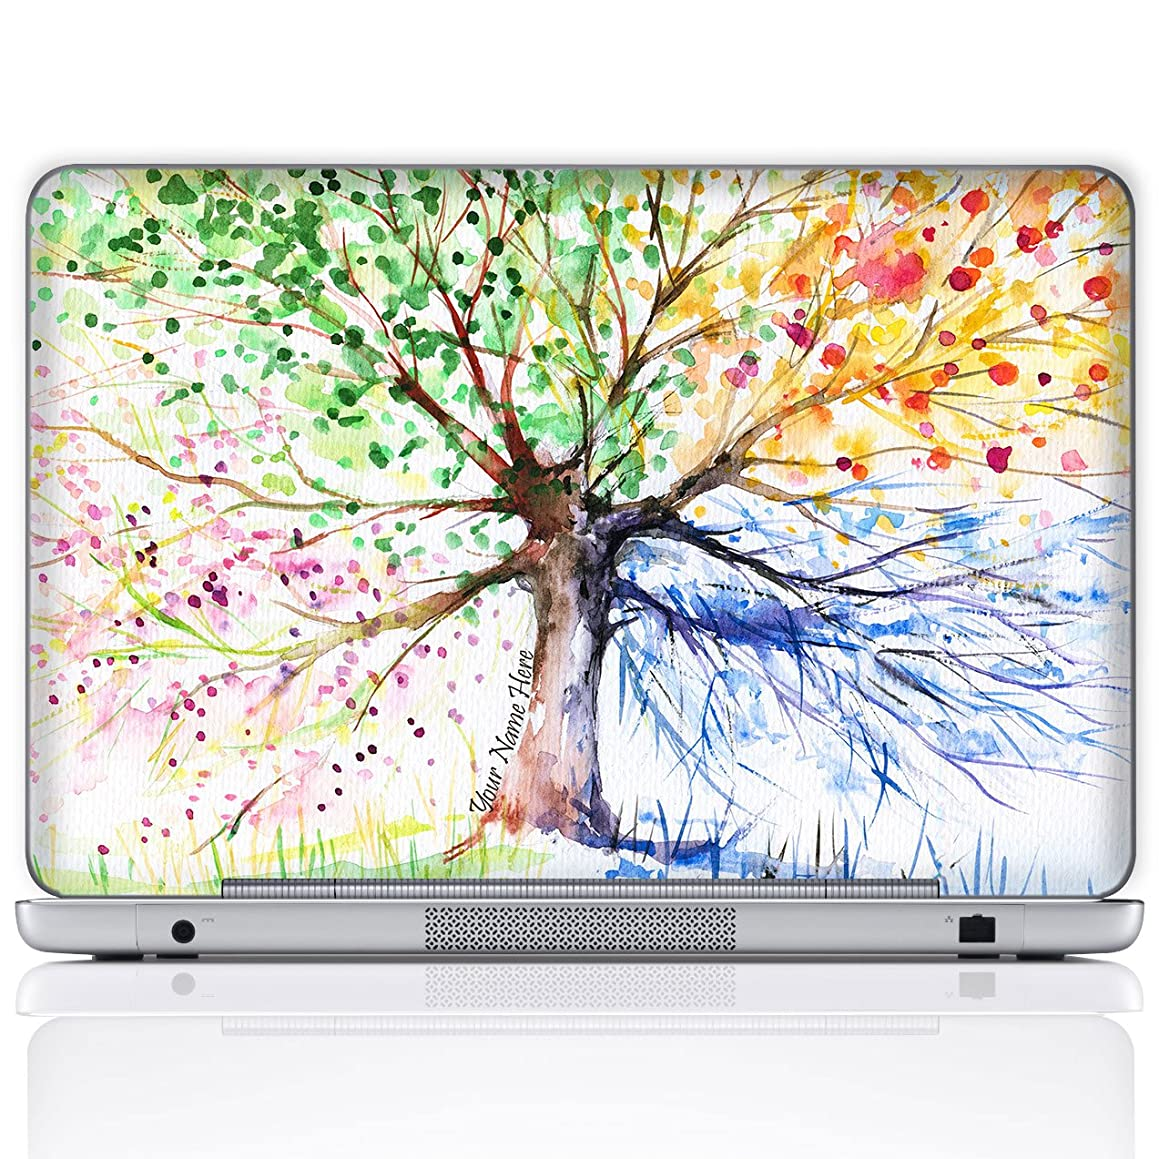 Meffort Inc Personalized Laptop Notebook Notebook Skin Sticker Cover Art Decal, Customize Your Name (15.6 Inch, Four Seasons Tree)